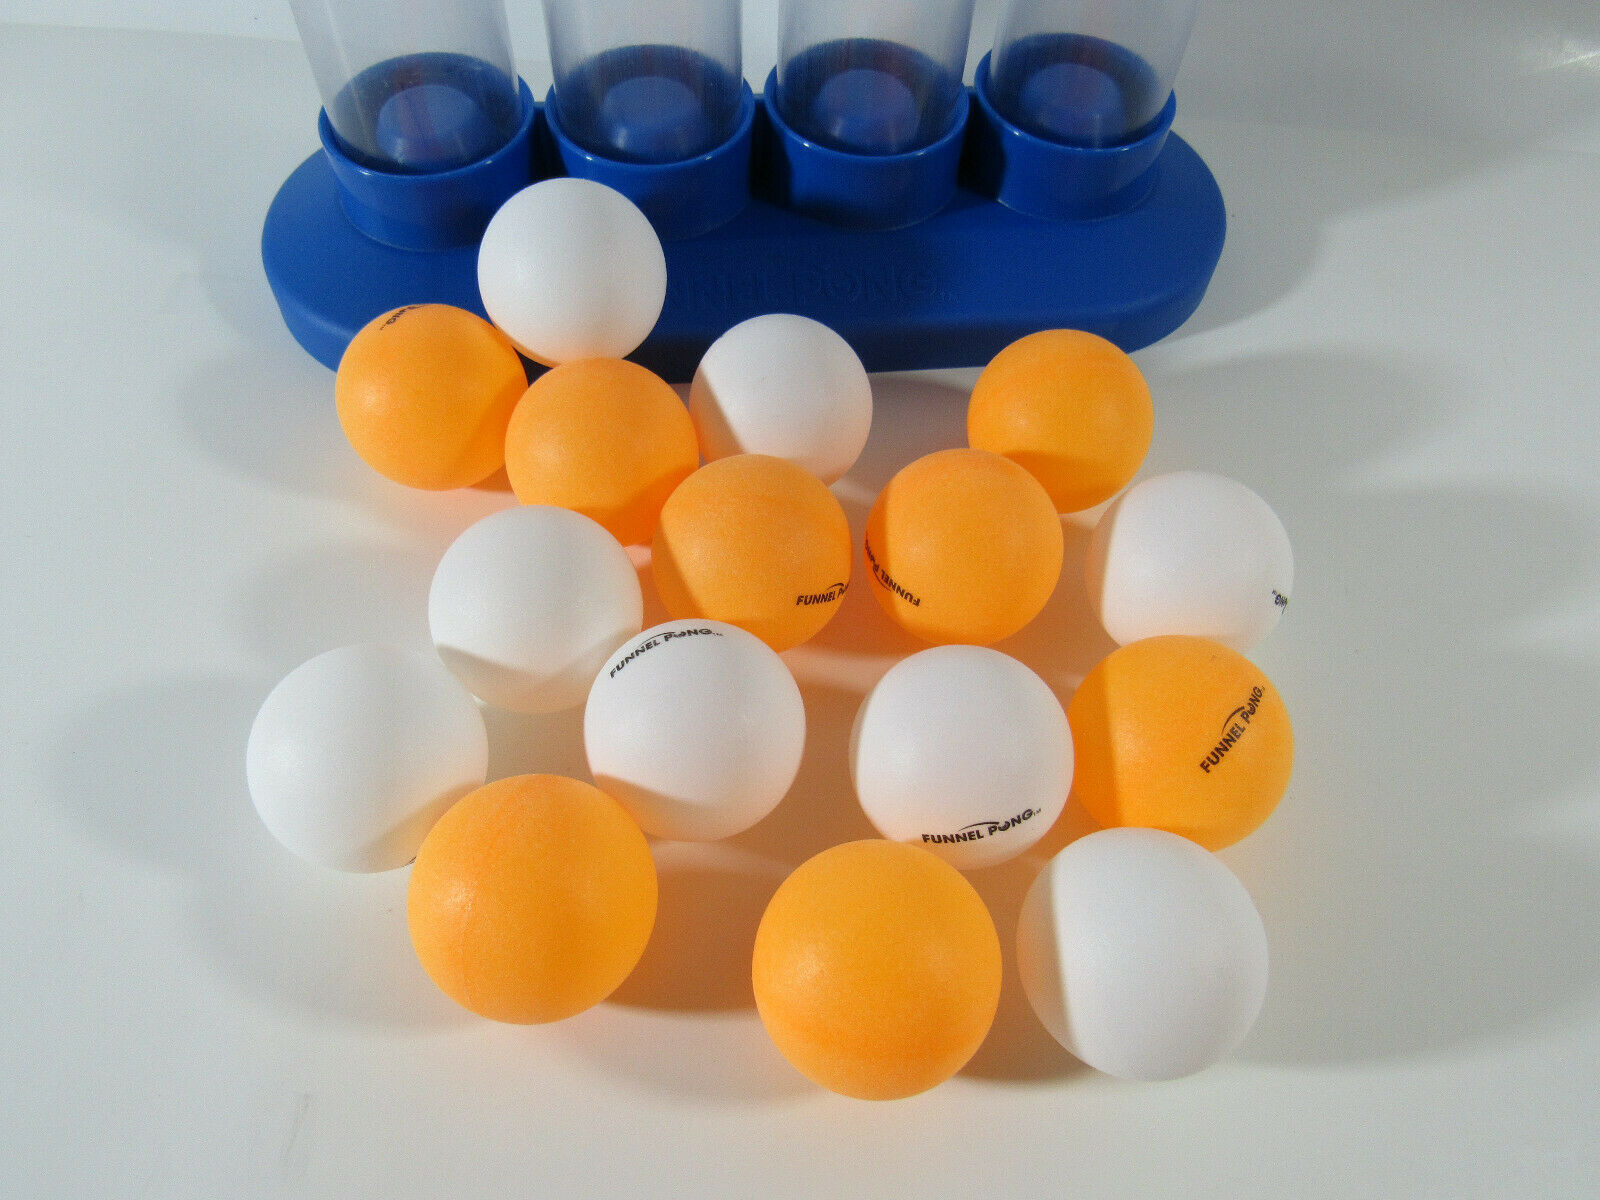 Primary image for Funnel Pong Game Three In A Row Ping Ball